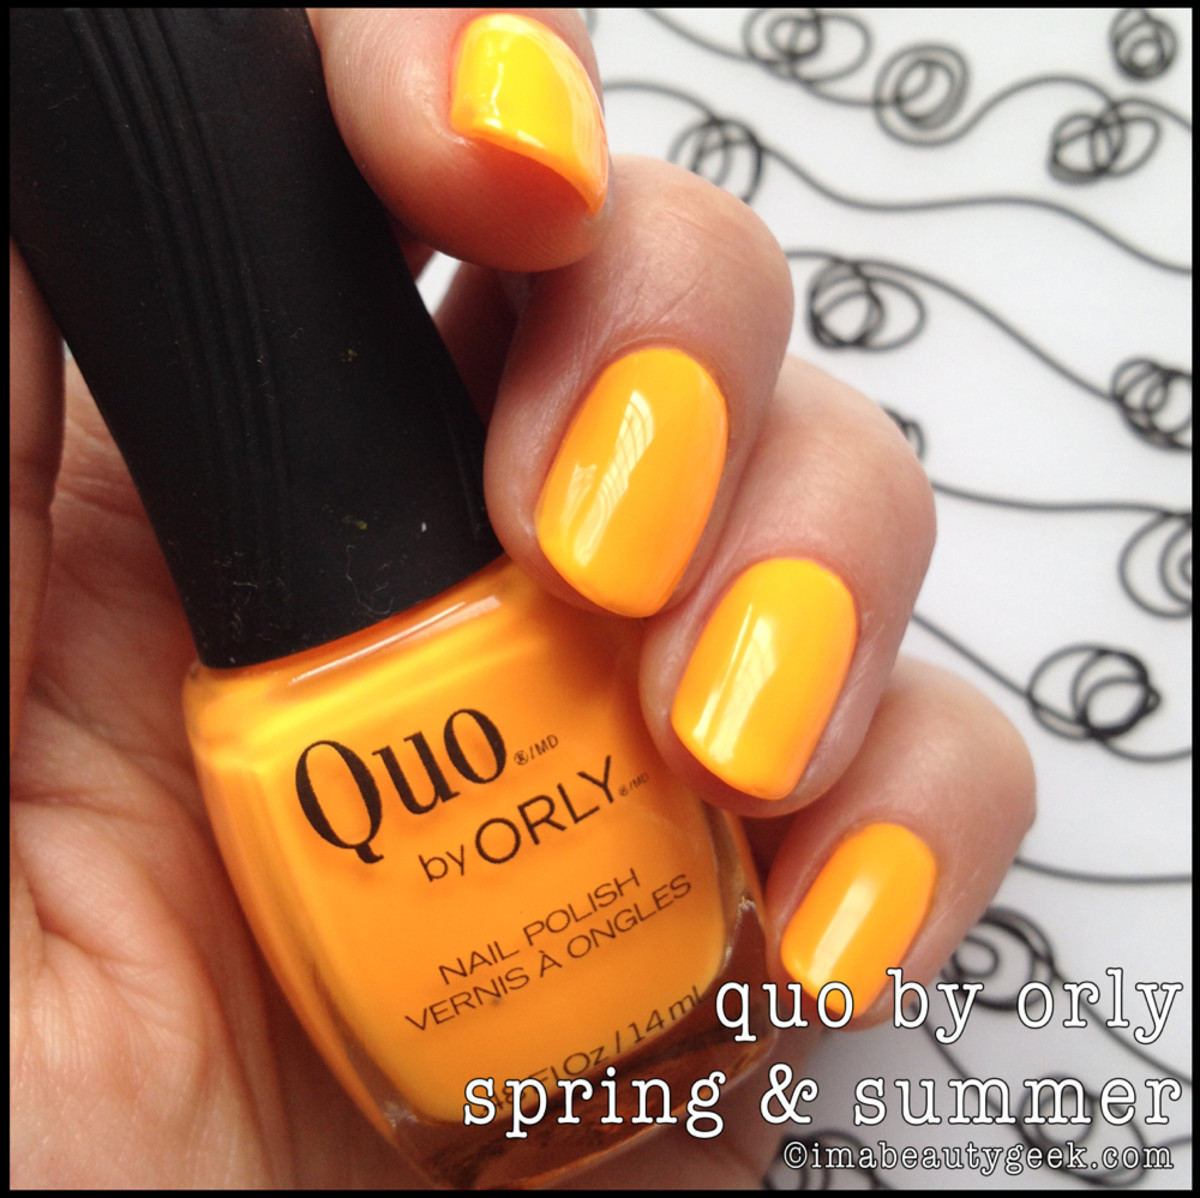 Quo by Orly hot summer shades